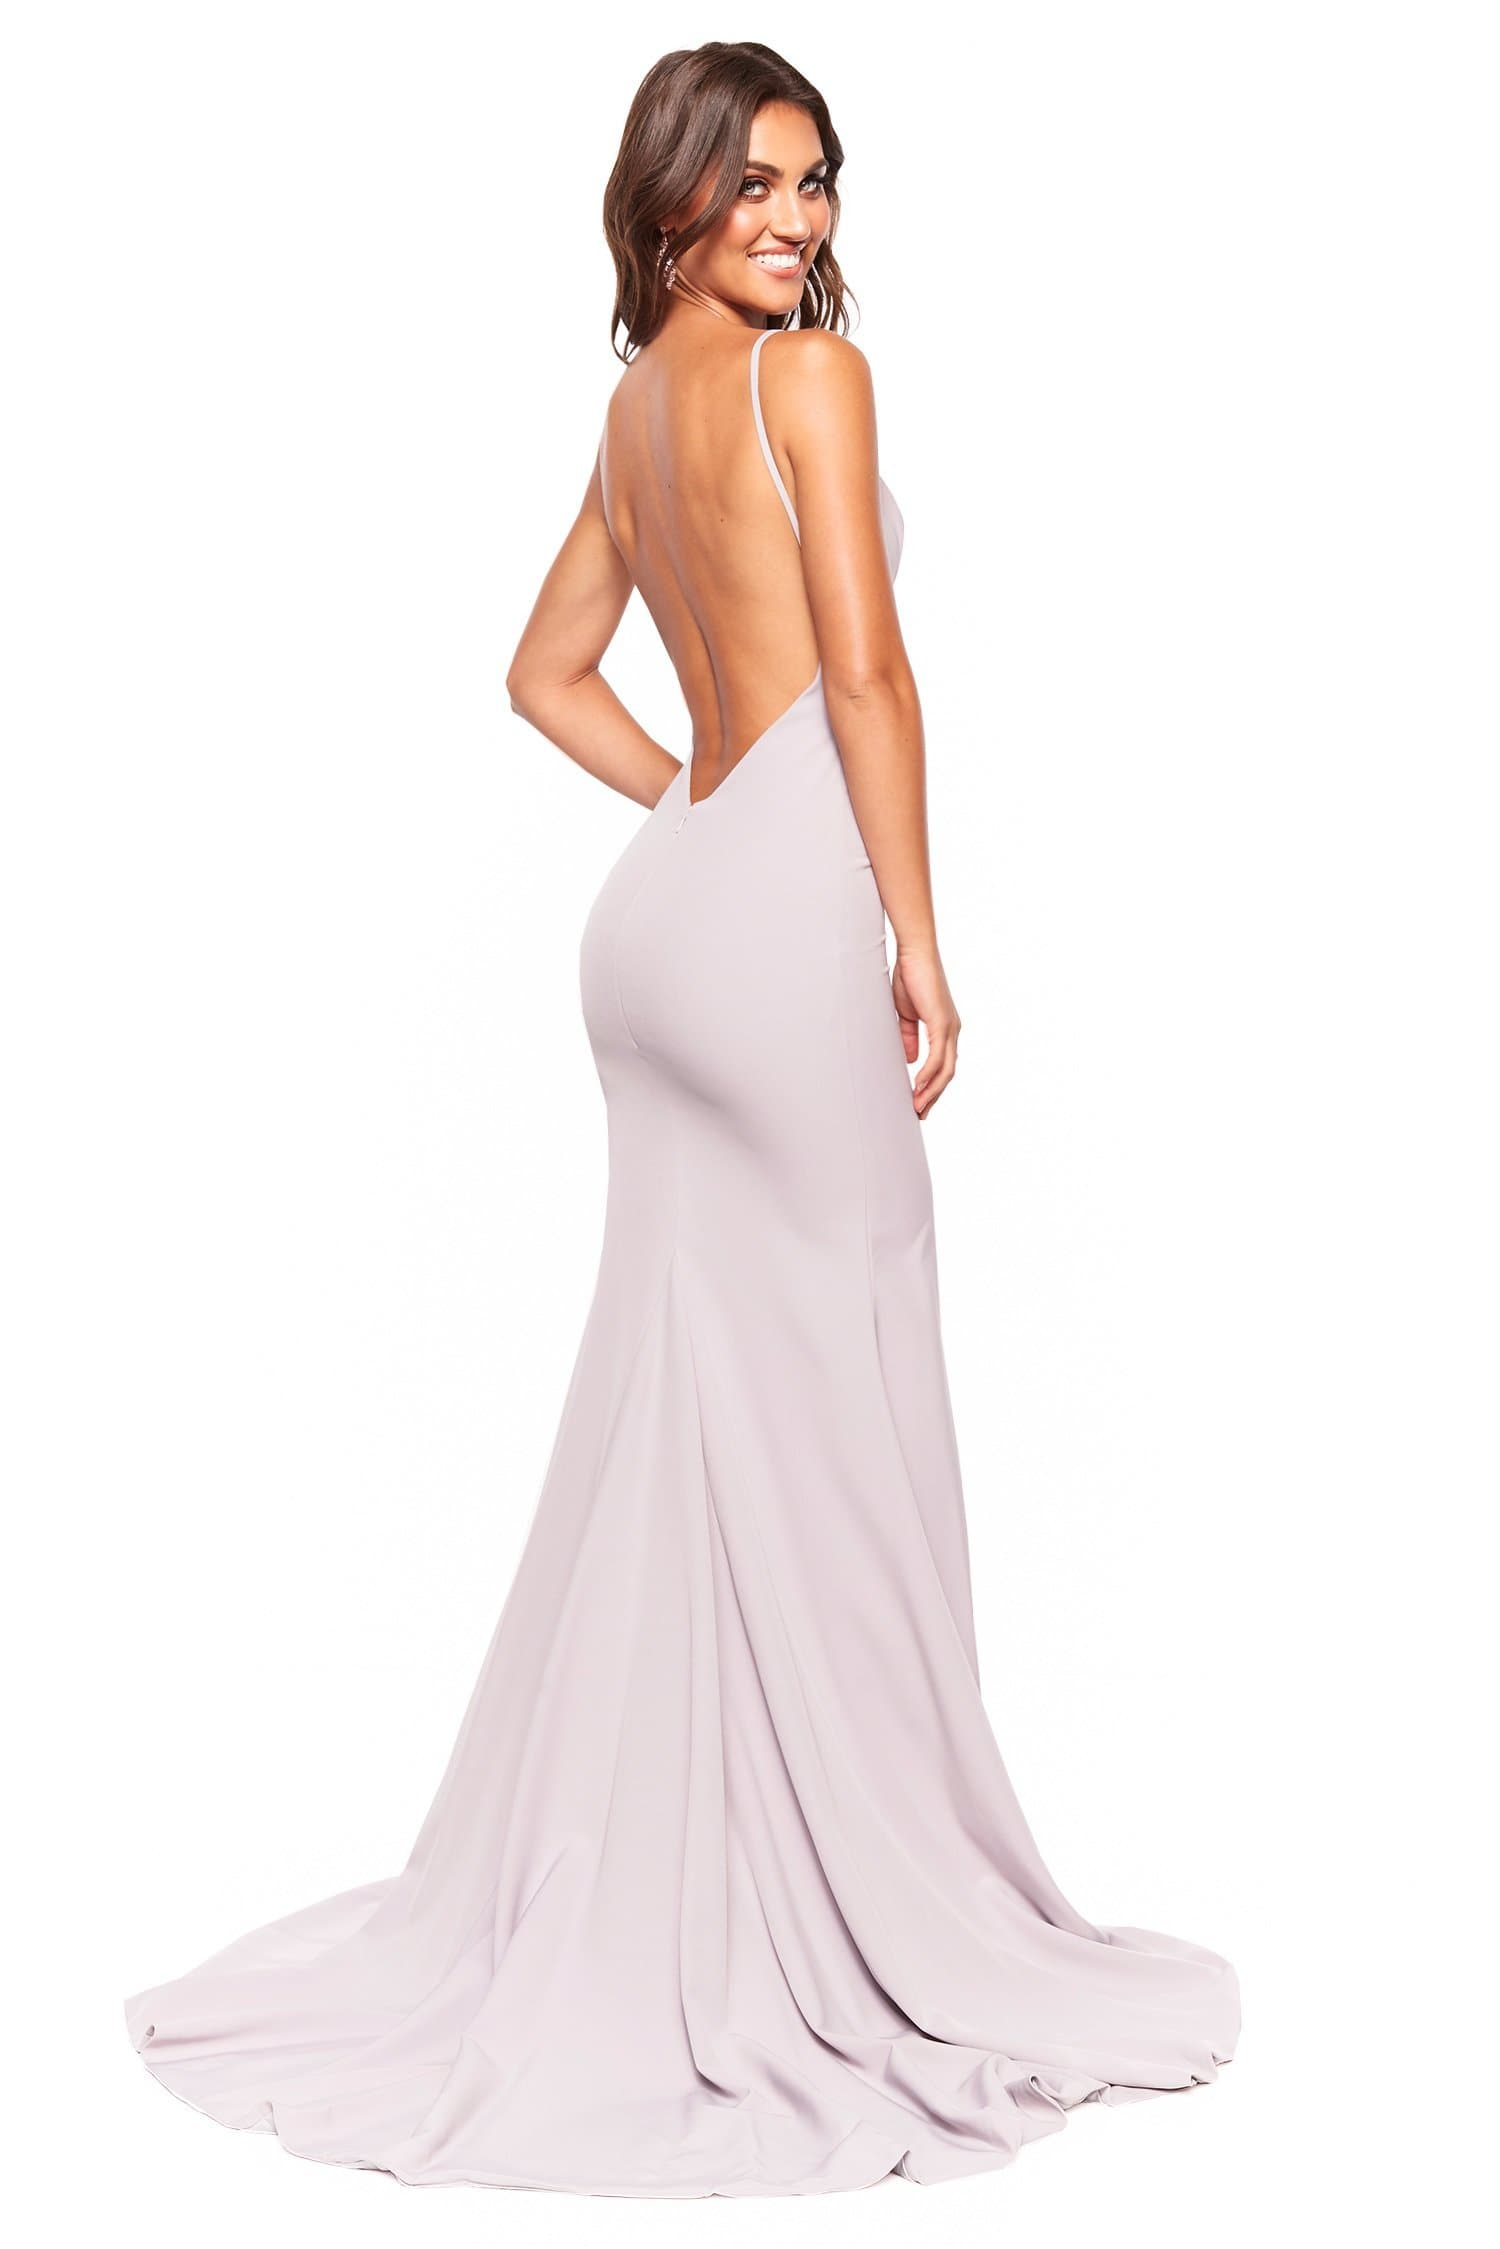 A&N Luxe Hannah - Grey Lilac Plunge Neck Low Back Gown With Slit